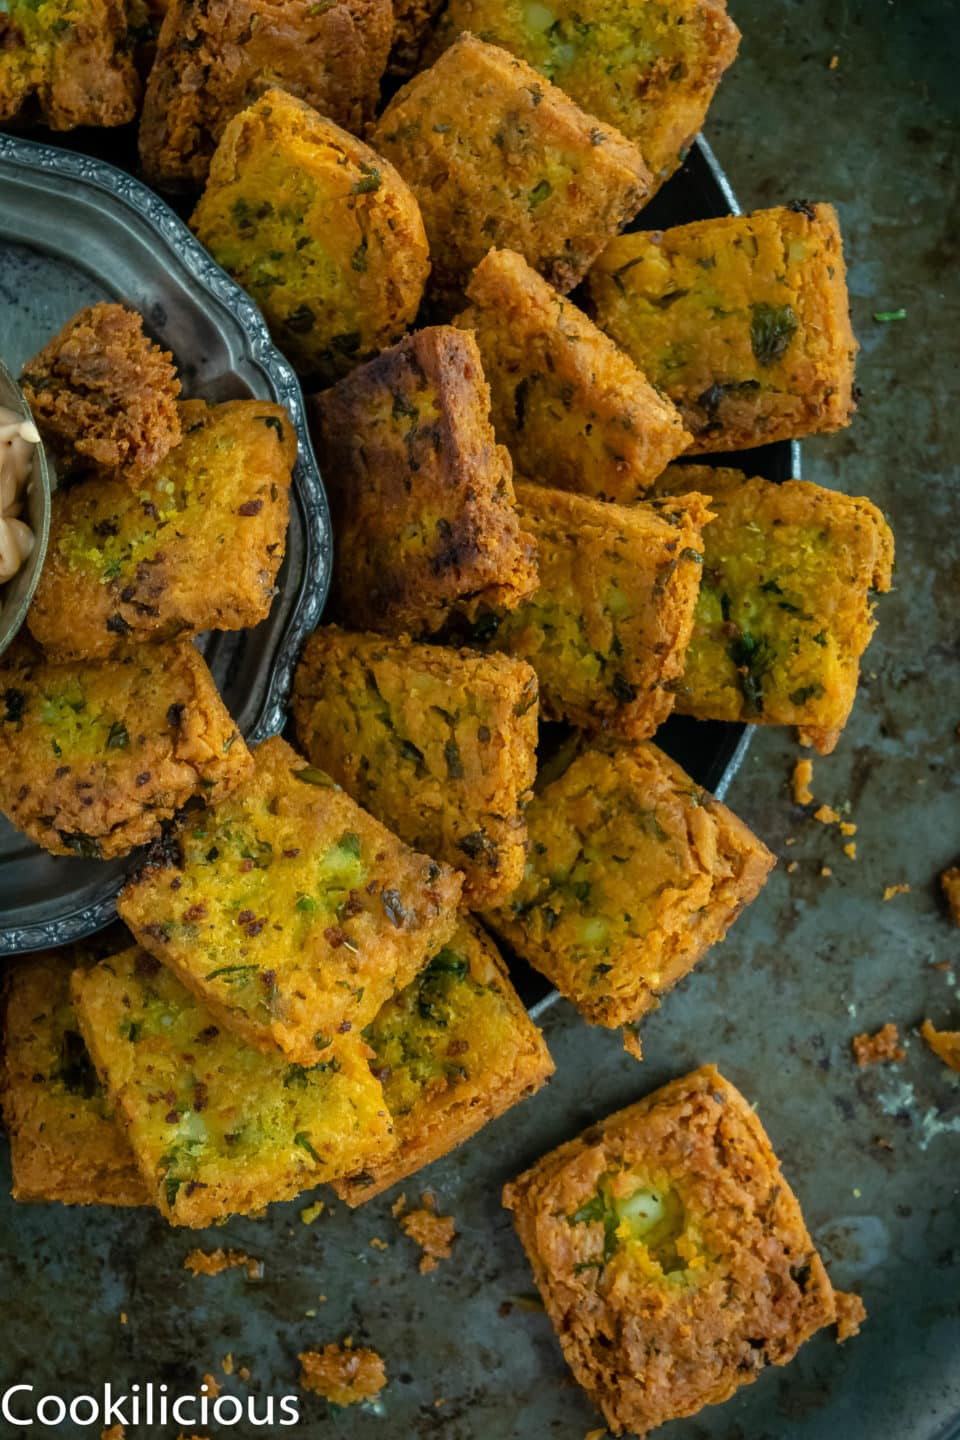 Fried Besan (Chickpea Flour) & Potato Squares placed in a platter